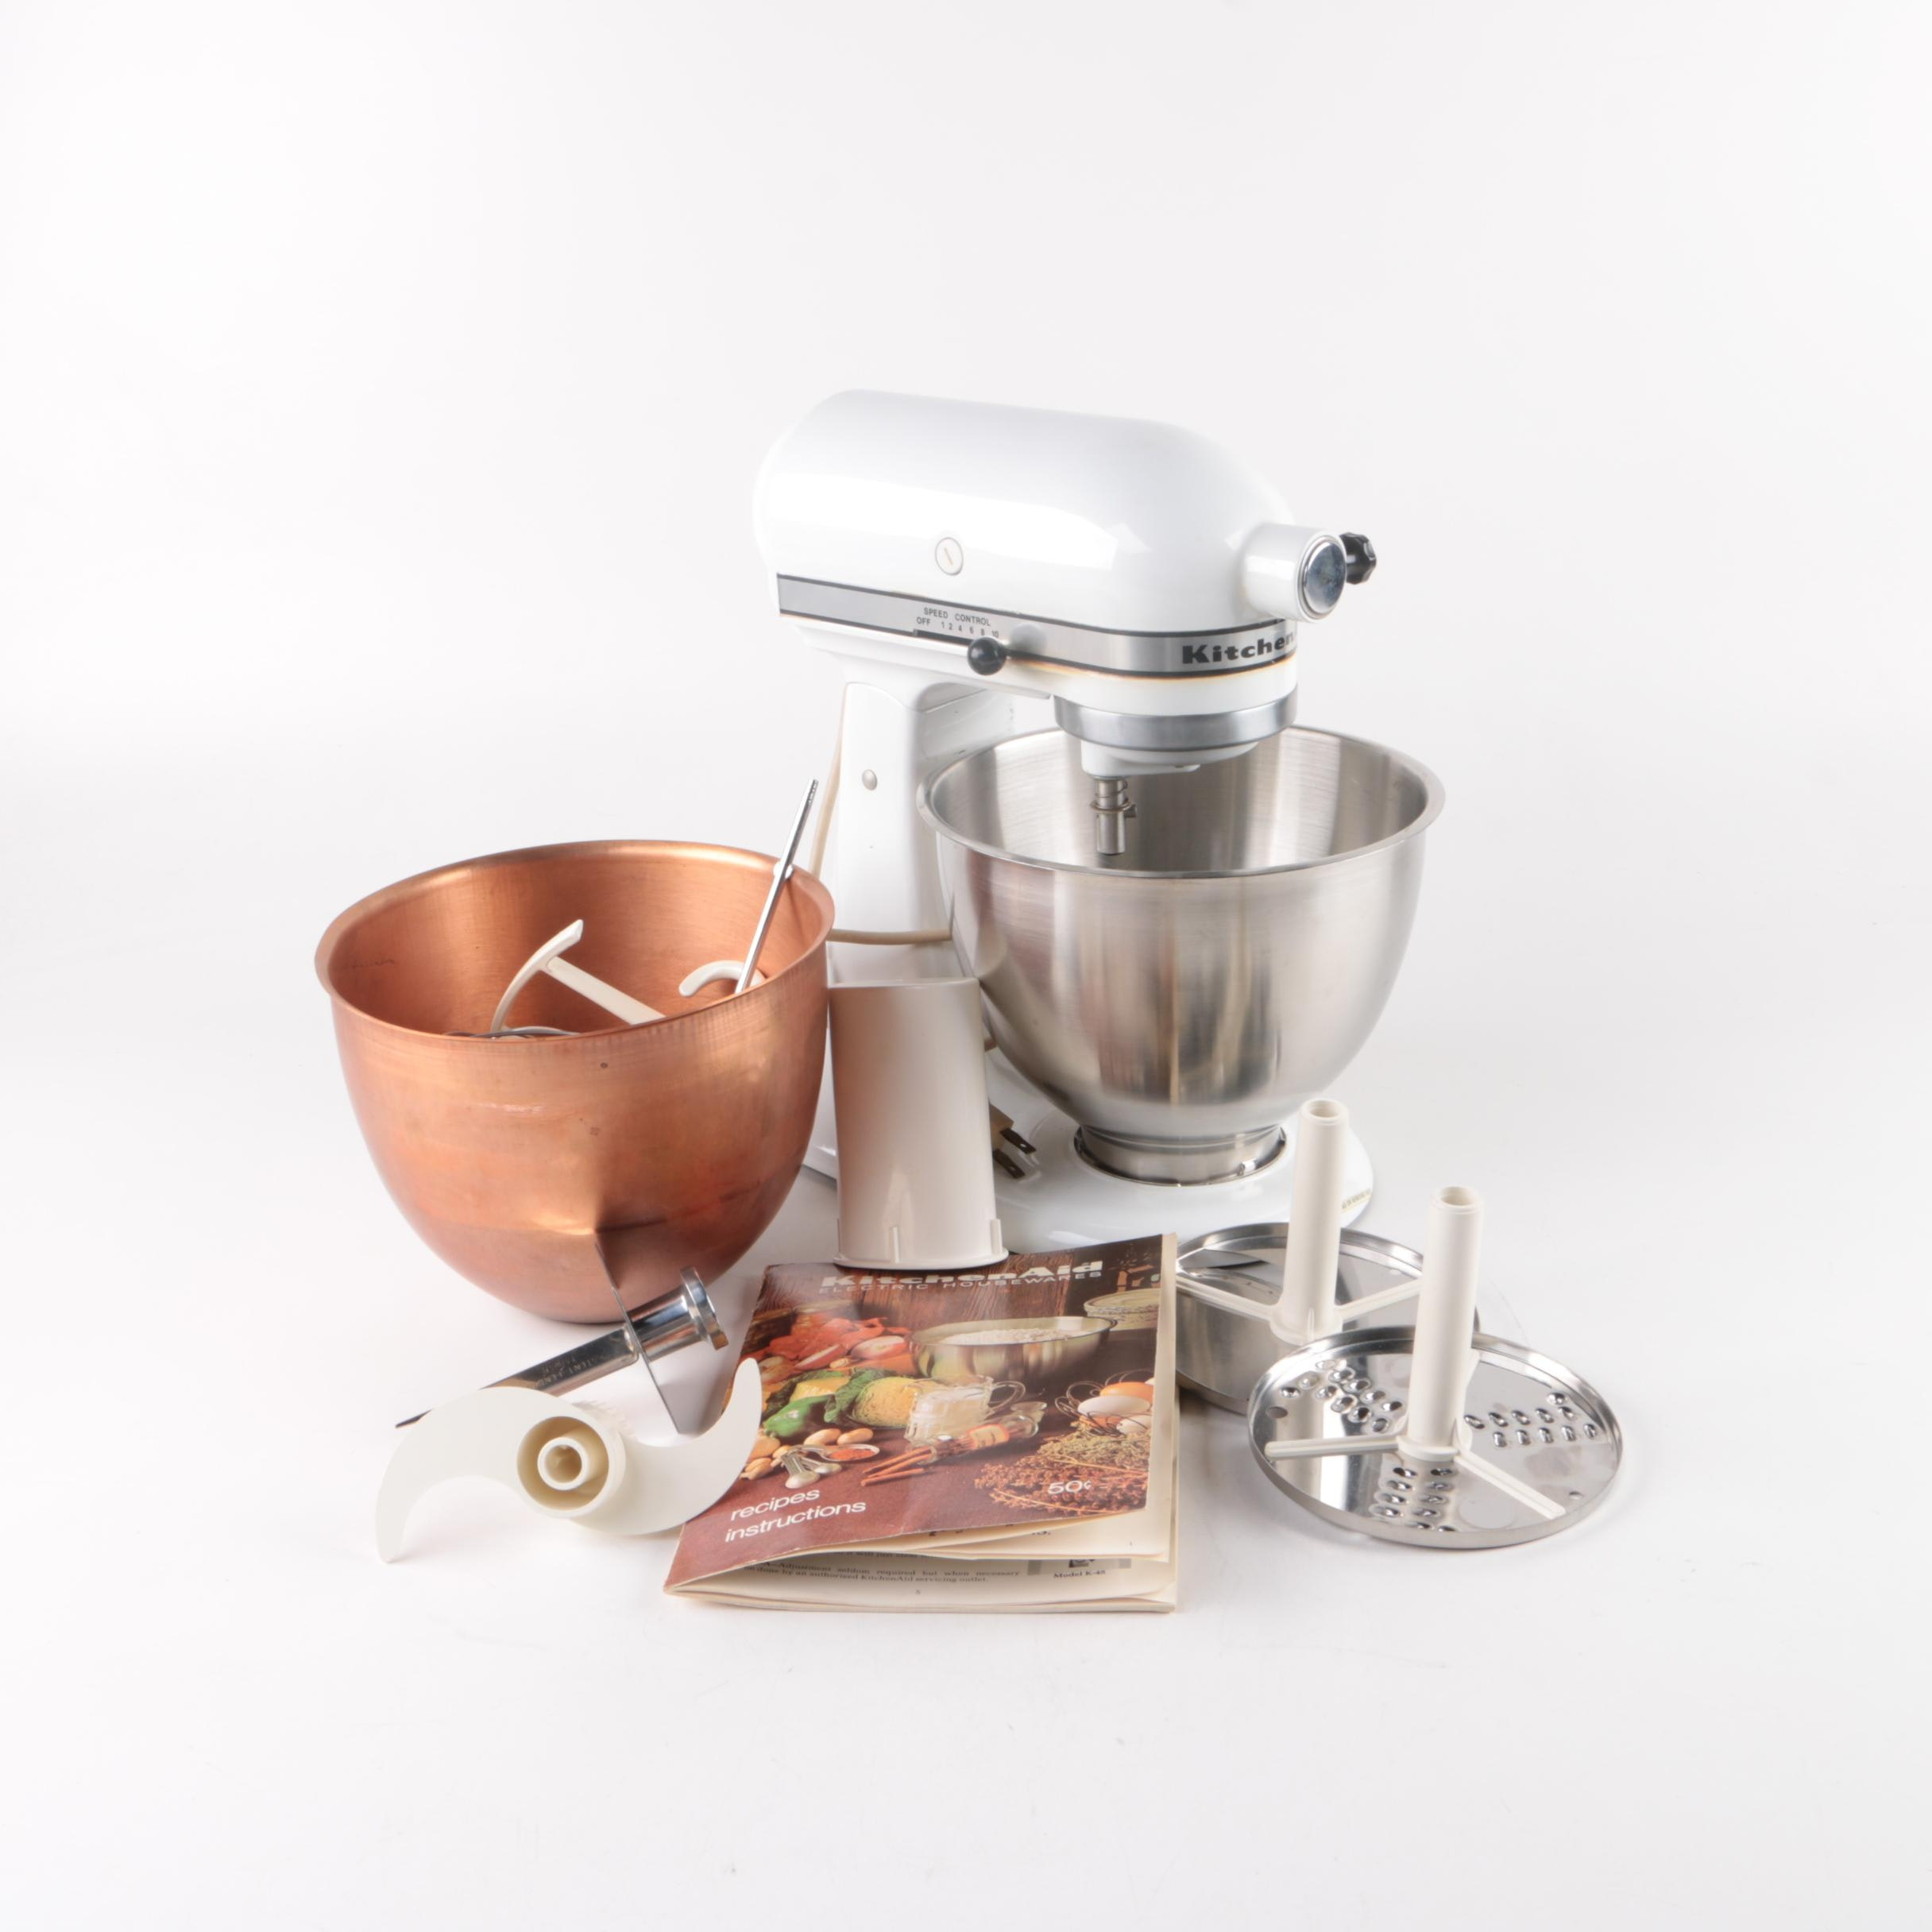 White KitchenAid Stand Mixer, Accessories and Instruction Book